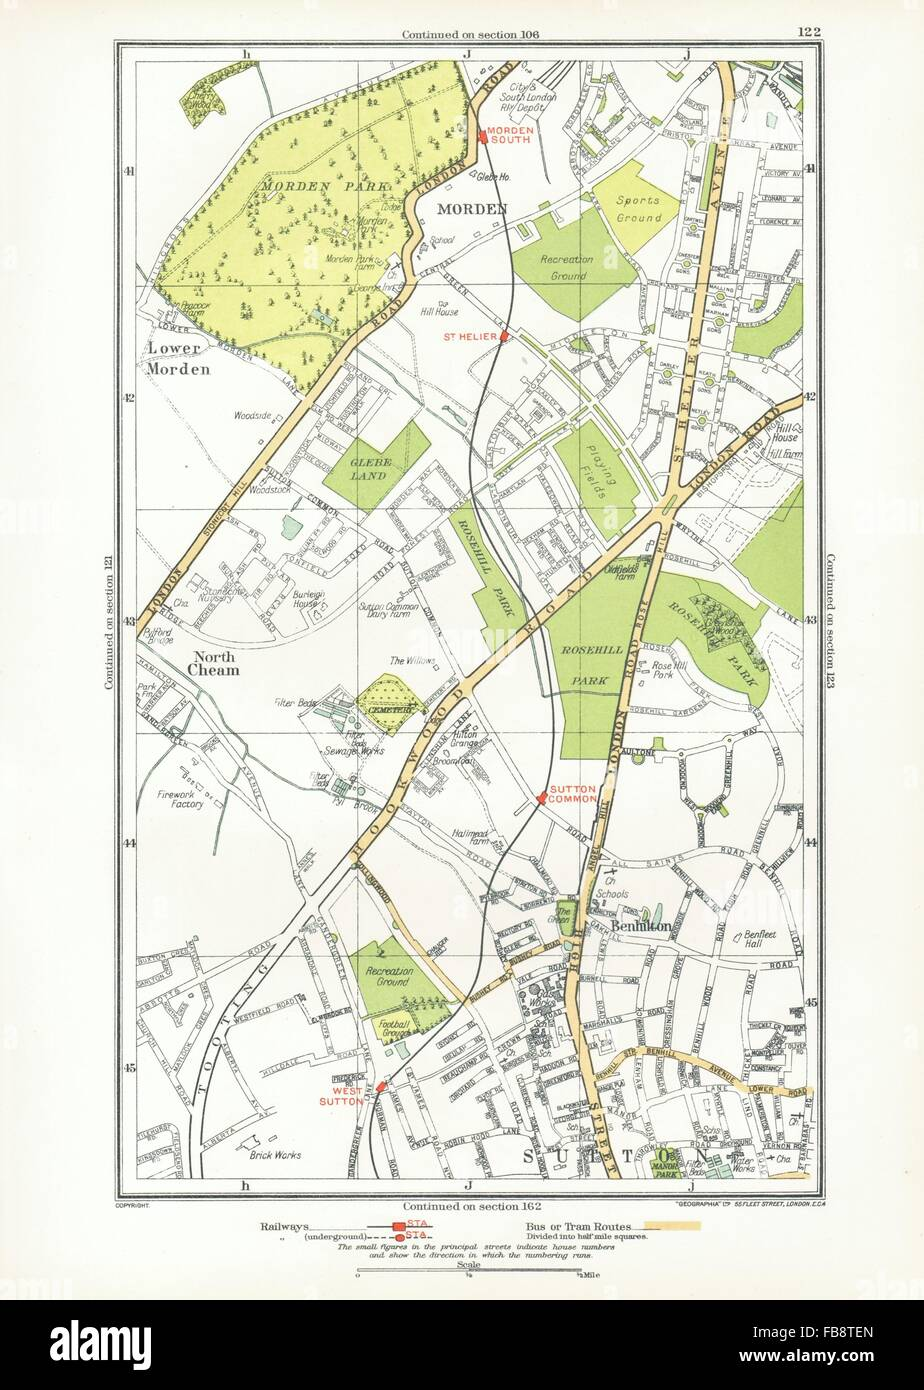 SUTTON. Benhilton, North/Lower Morden Park, Cheam, St Helier; Surrey, 1933 map - Stock Image